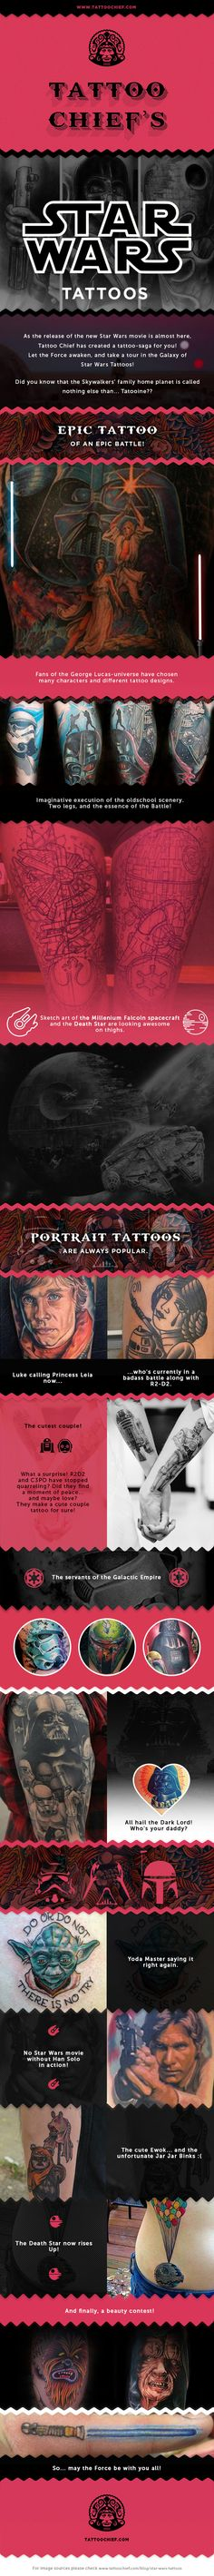 Tattoo Chief blog:Star Wars Tattoos. Be inspired by some of the best tattoos on the planet.